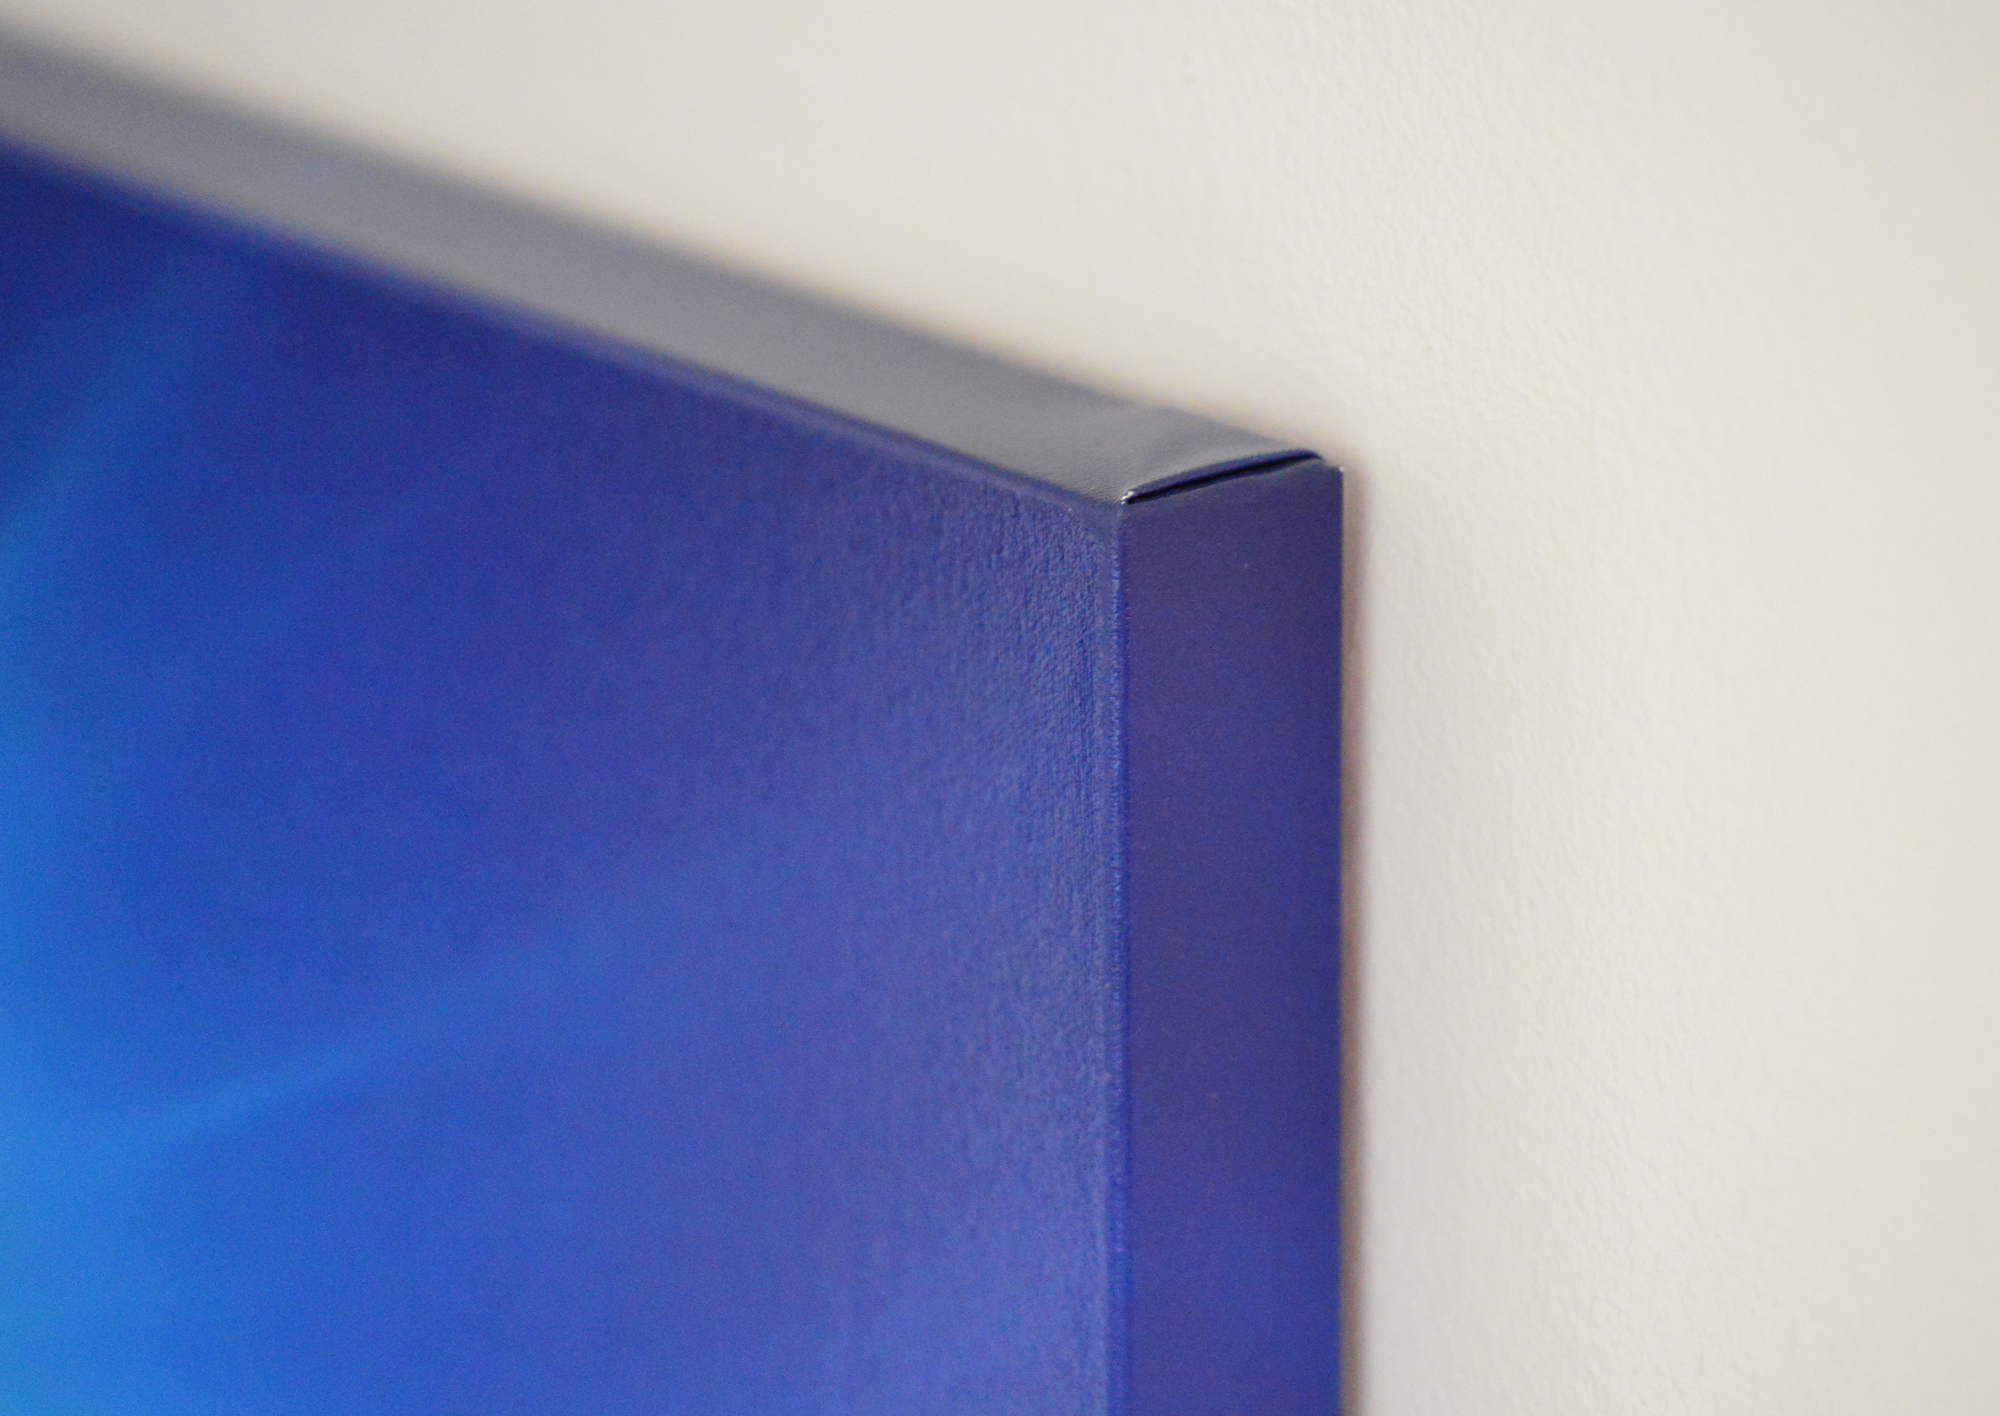 Our canvas prints feature Chromata White Canvas stretched on to .5 inch oak stretcher bars.